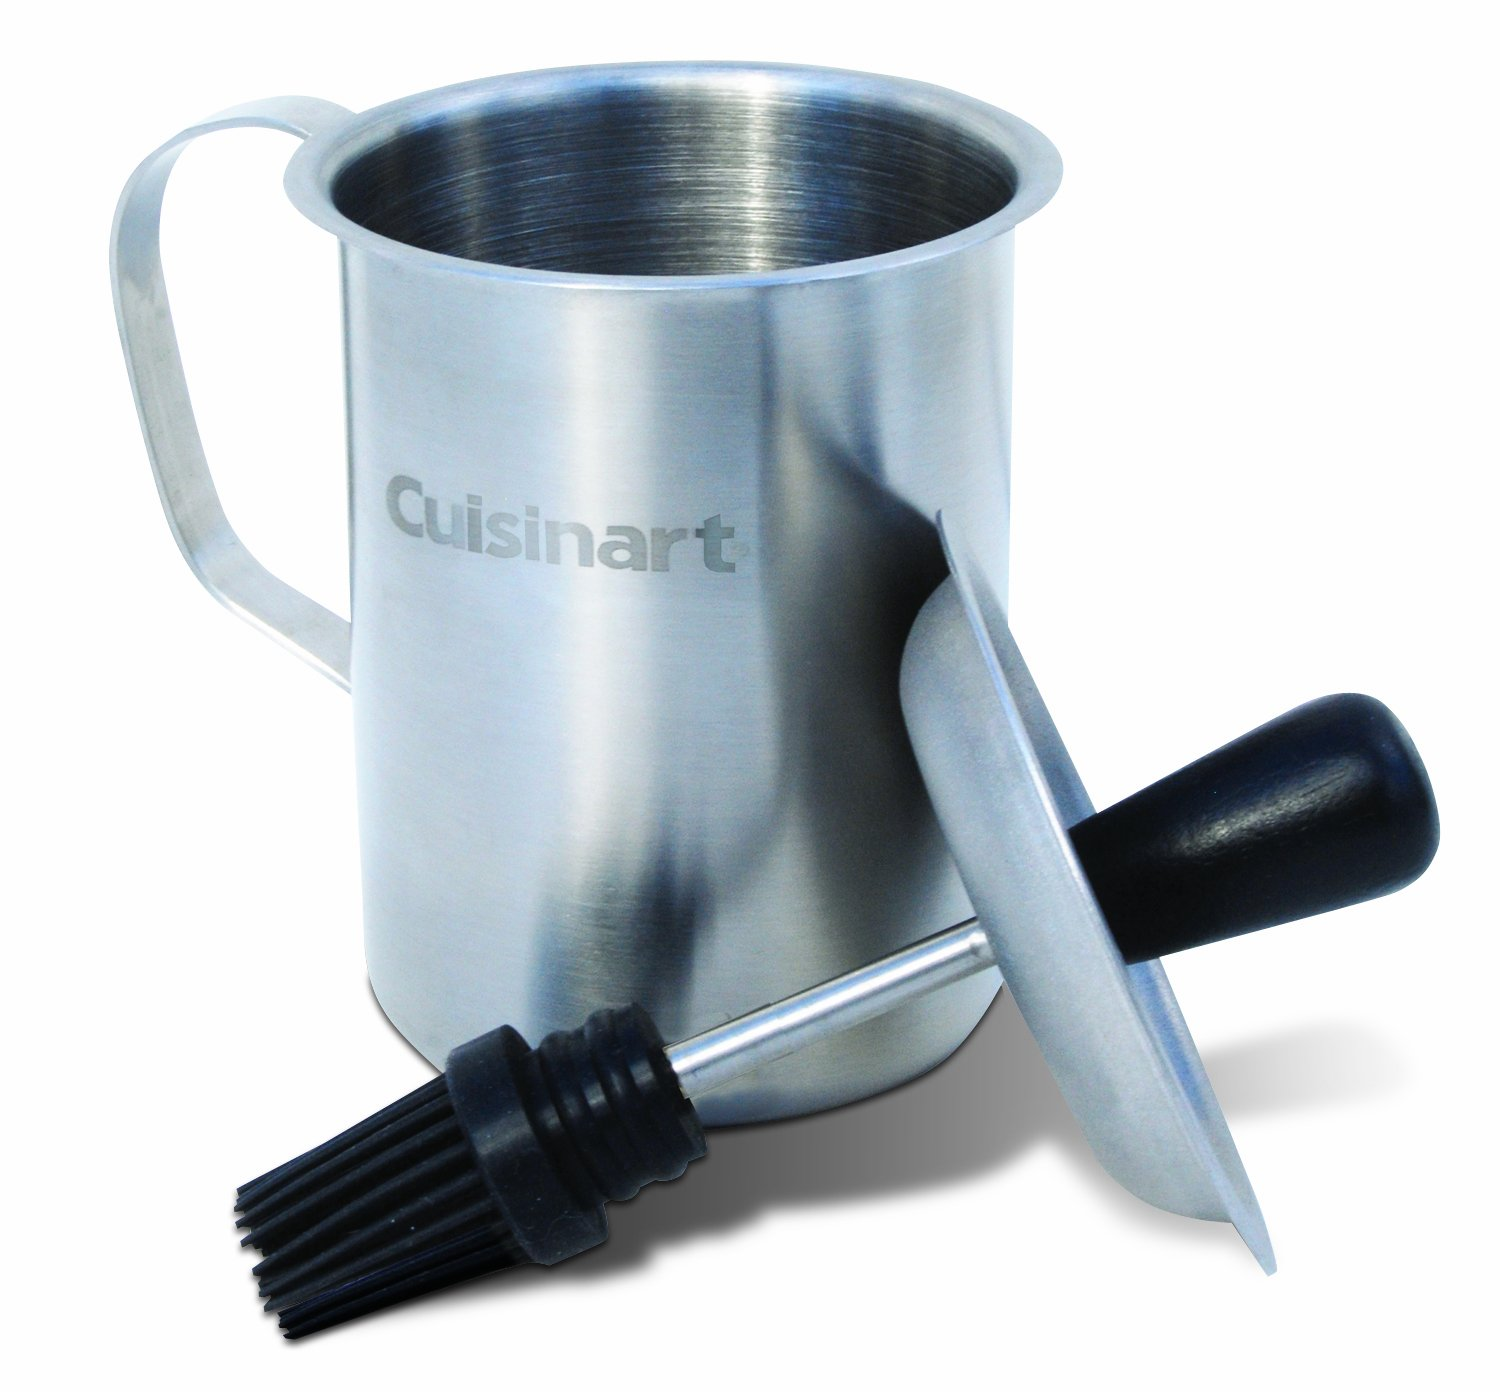 Cuisinart CBP-116 Sauce Pot and Basting Brush Set , Stainless Steel